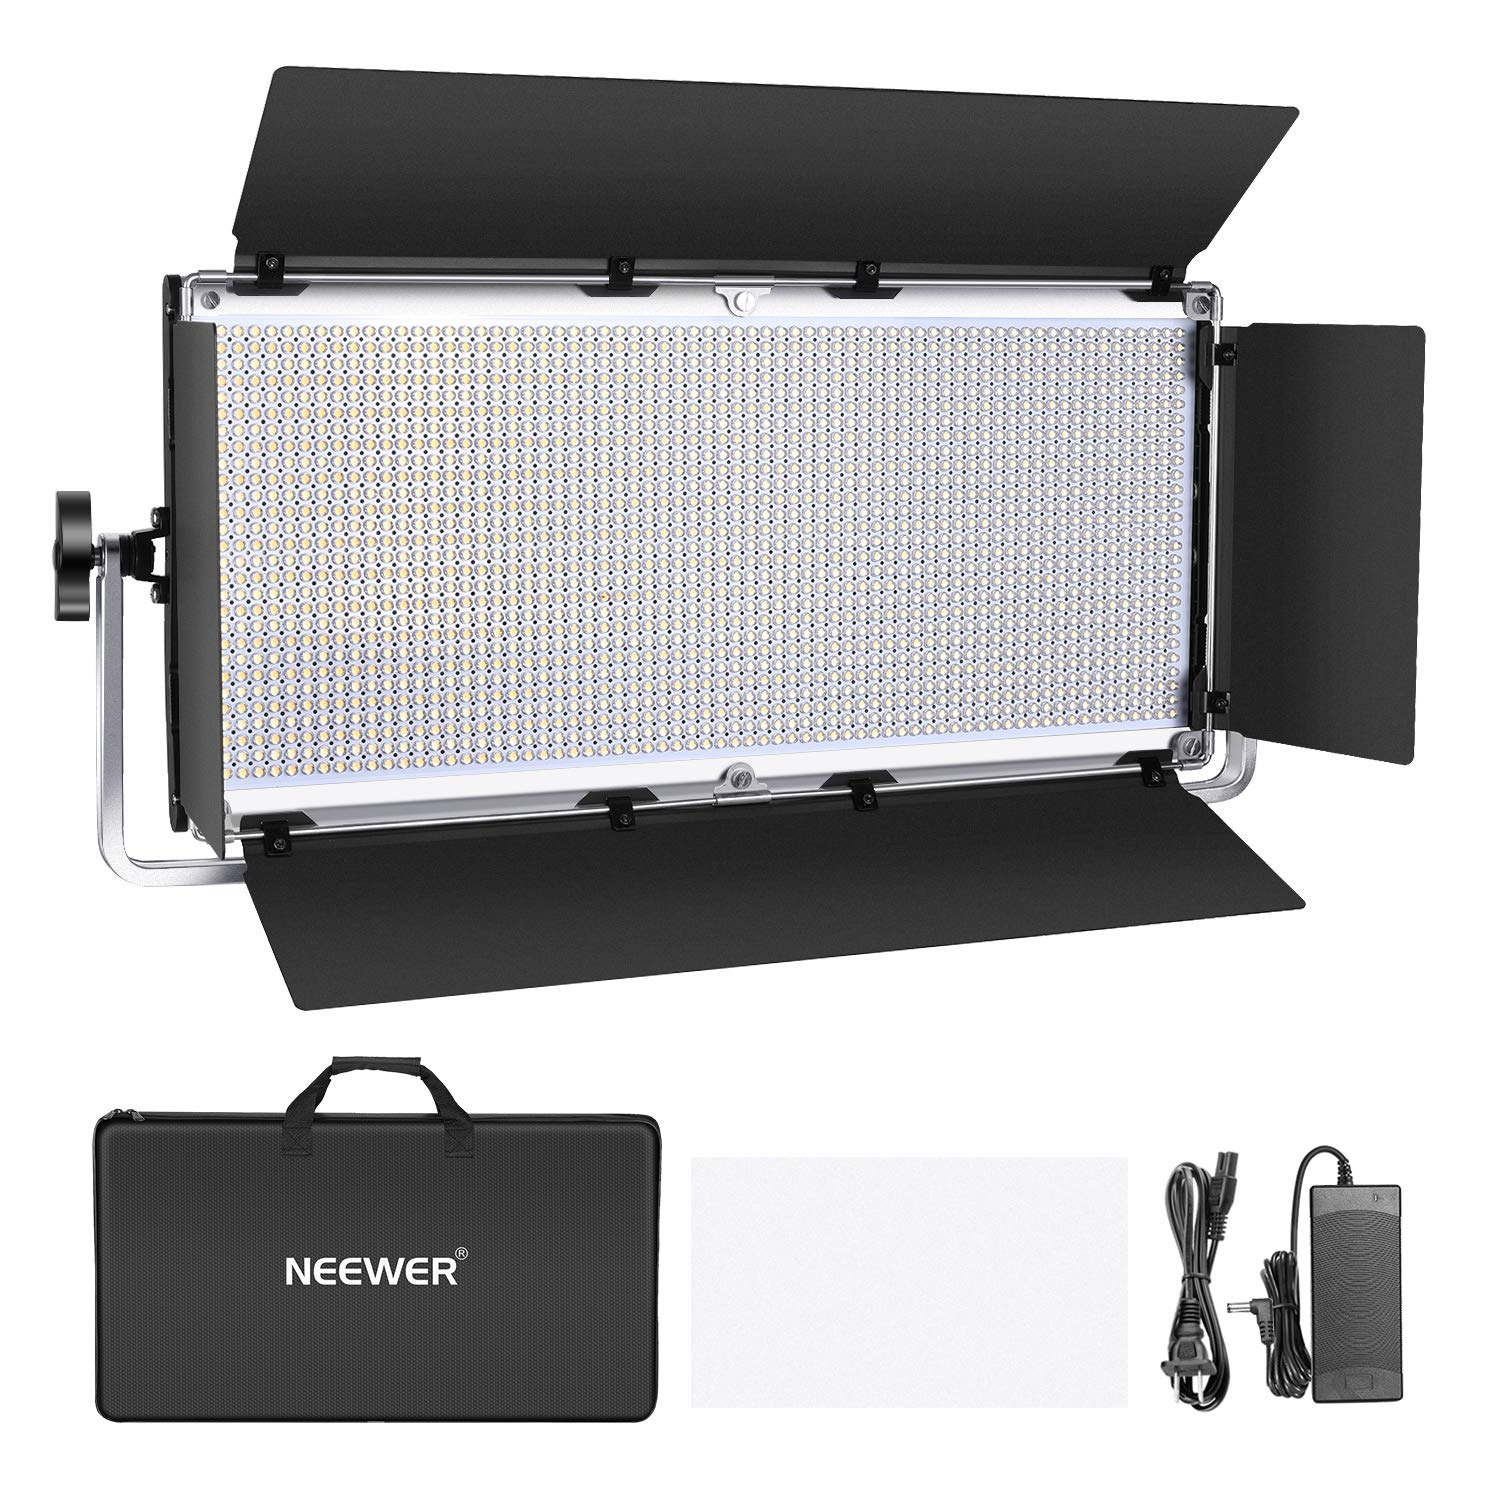 Neewer Dimmable 1904 LED Video Light Photography LED Lighting with Metal Frame/Barndoor, 3200K-5600K, DC Adapter/Battery Power Options for Studio Portrait Product Video Shooting (Battery Not Include) by Neewer